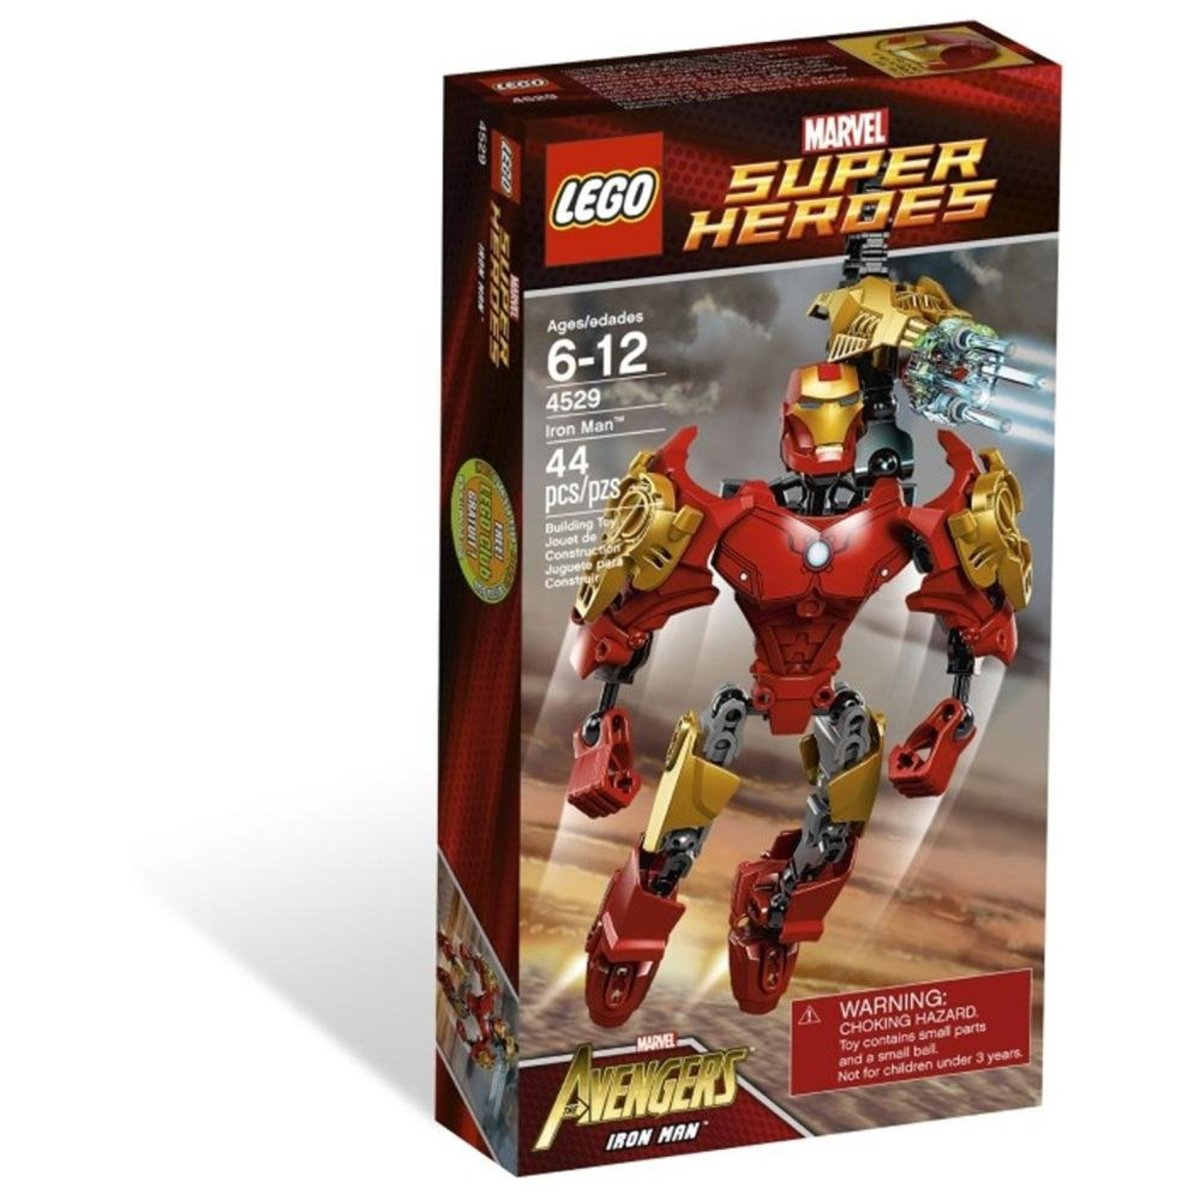 LEGO Super Heroes Ultrabuild Iron Man 4529 Box